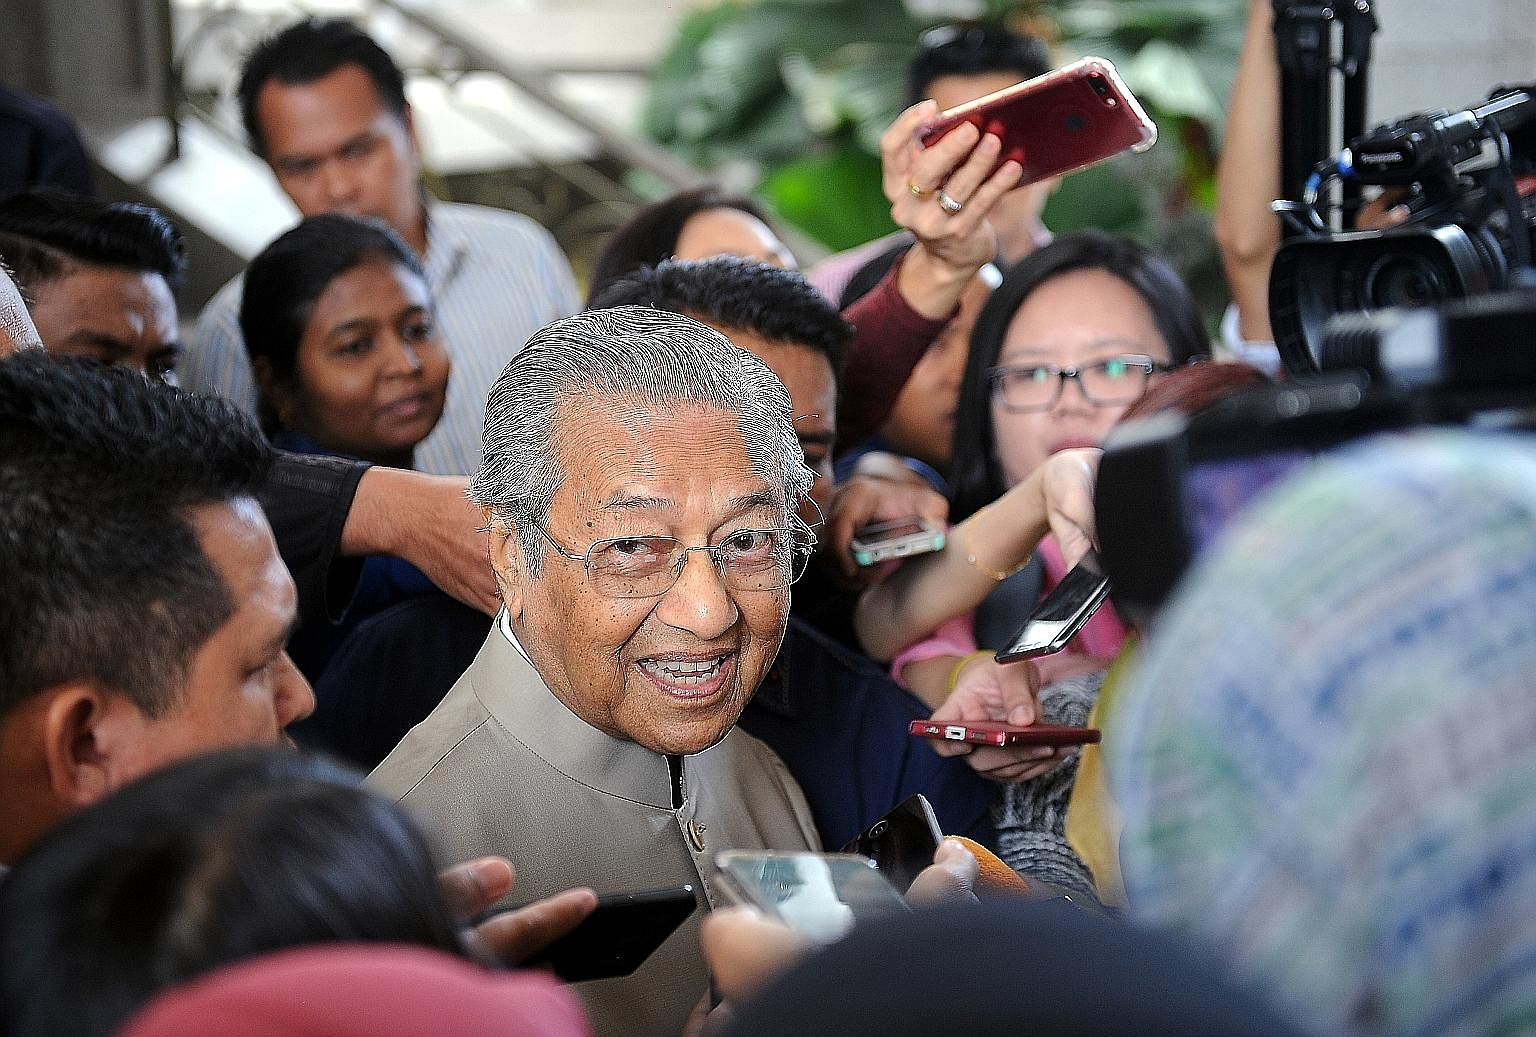 Dr Mahathir Mohamad speaking to reporters in Putrajaya on Aug 24, after attending a hearing of the Royal Commission of Inquiry probing foreign exchange losses suffered by Bank Negara Malaysia in the 1990s. Talk is heating up of the formation of anoth